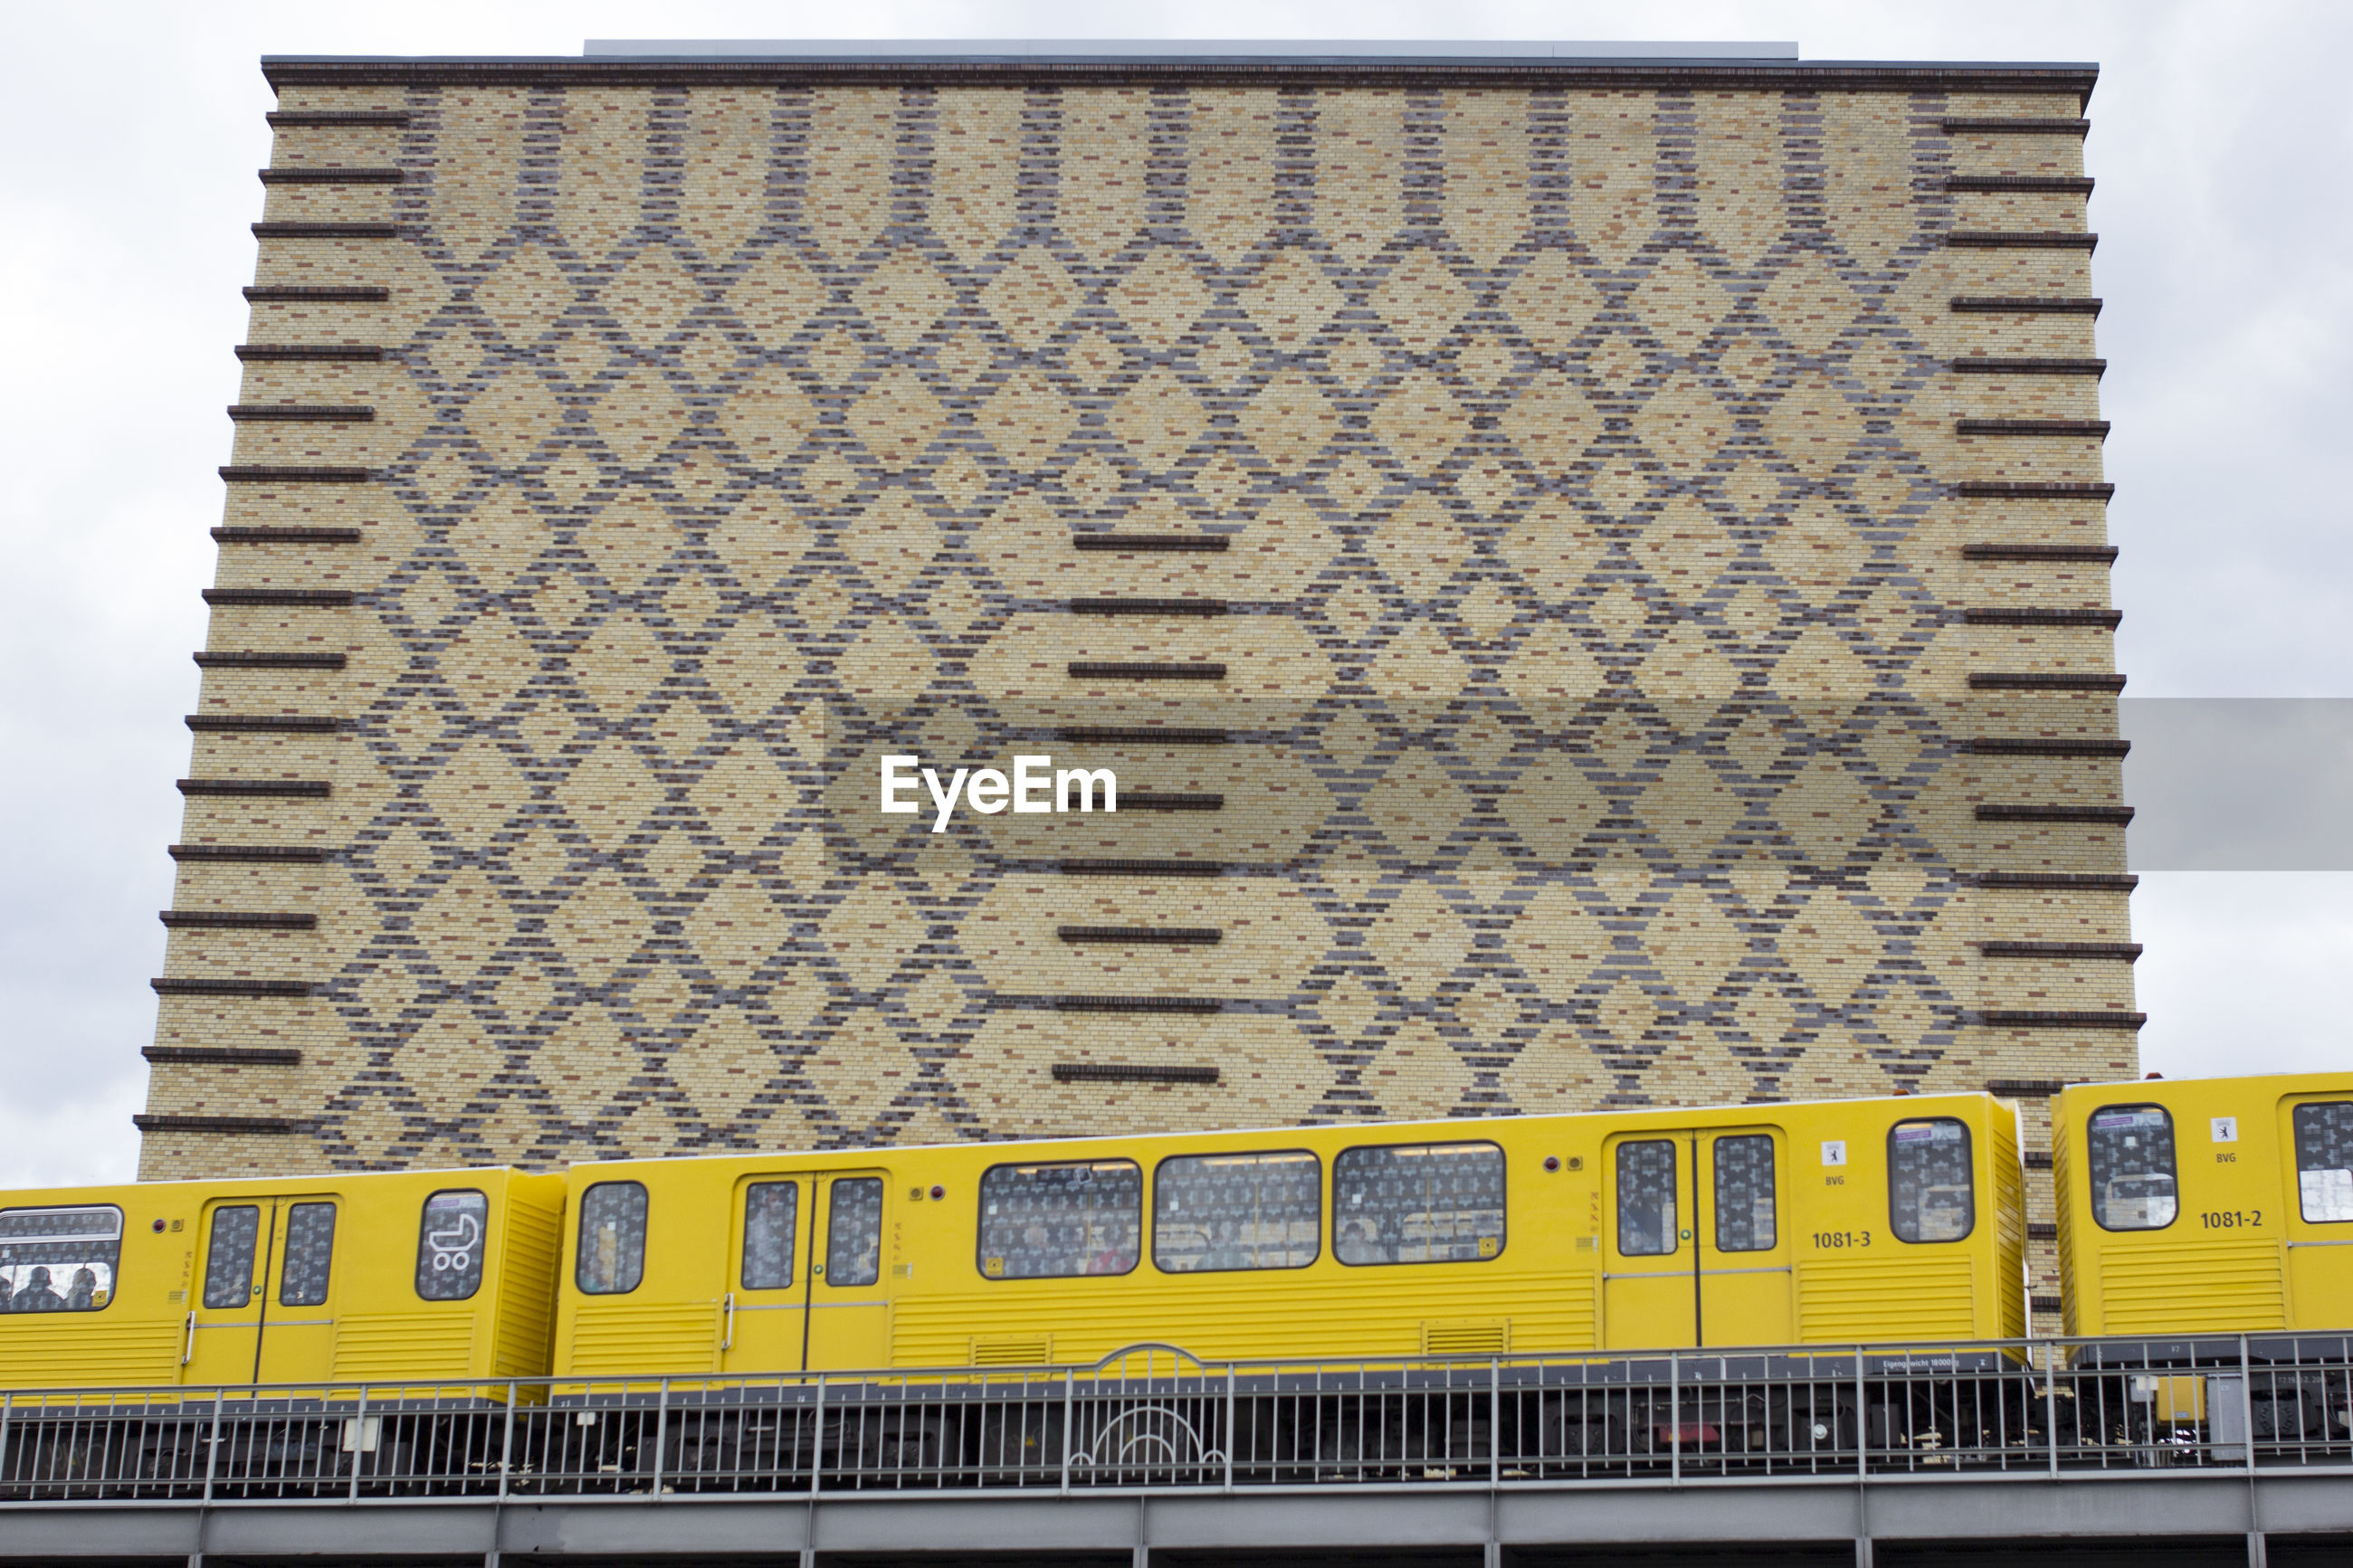 CLOSE-UP OF YELLOW TRAIN